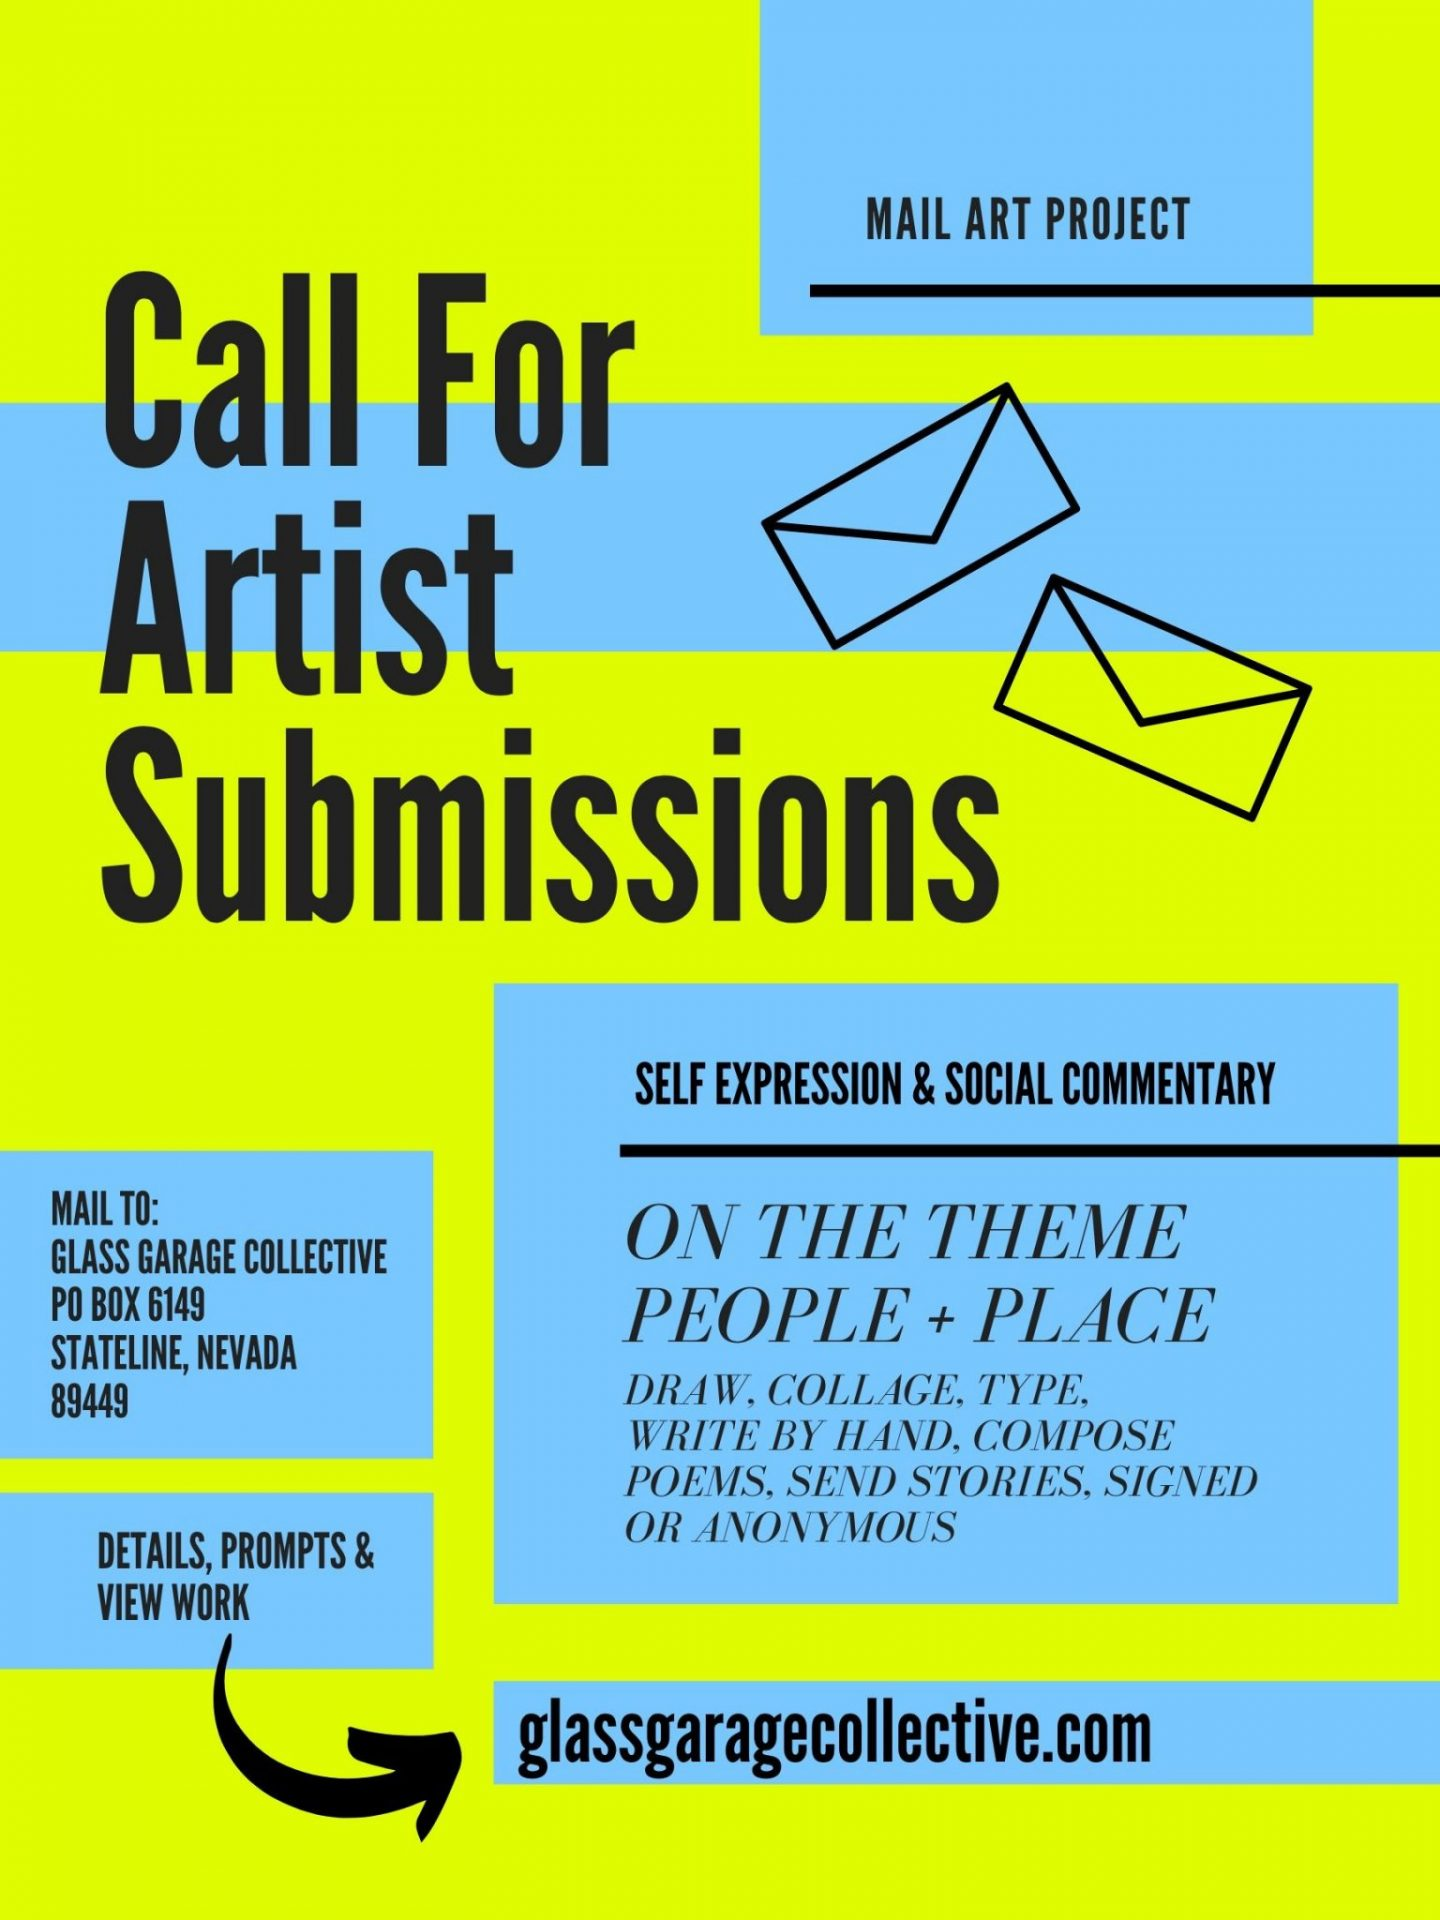 Lake Tahoe events: Mail Art: Call for Submissions